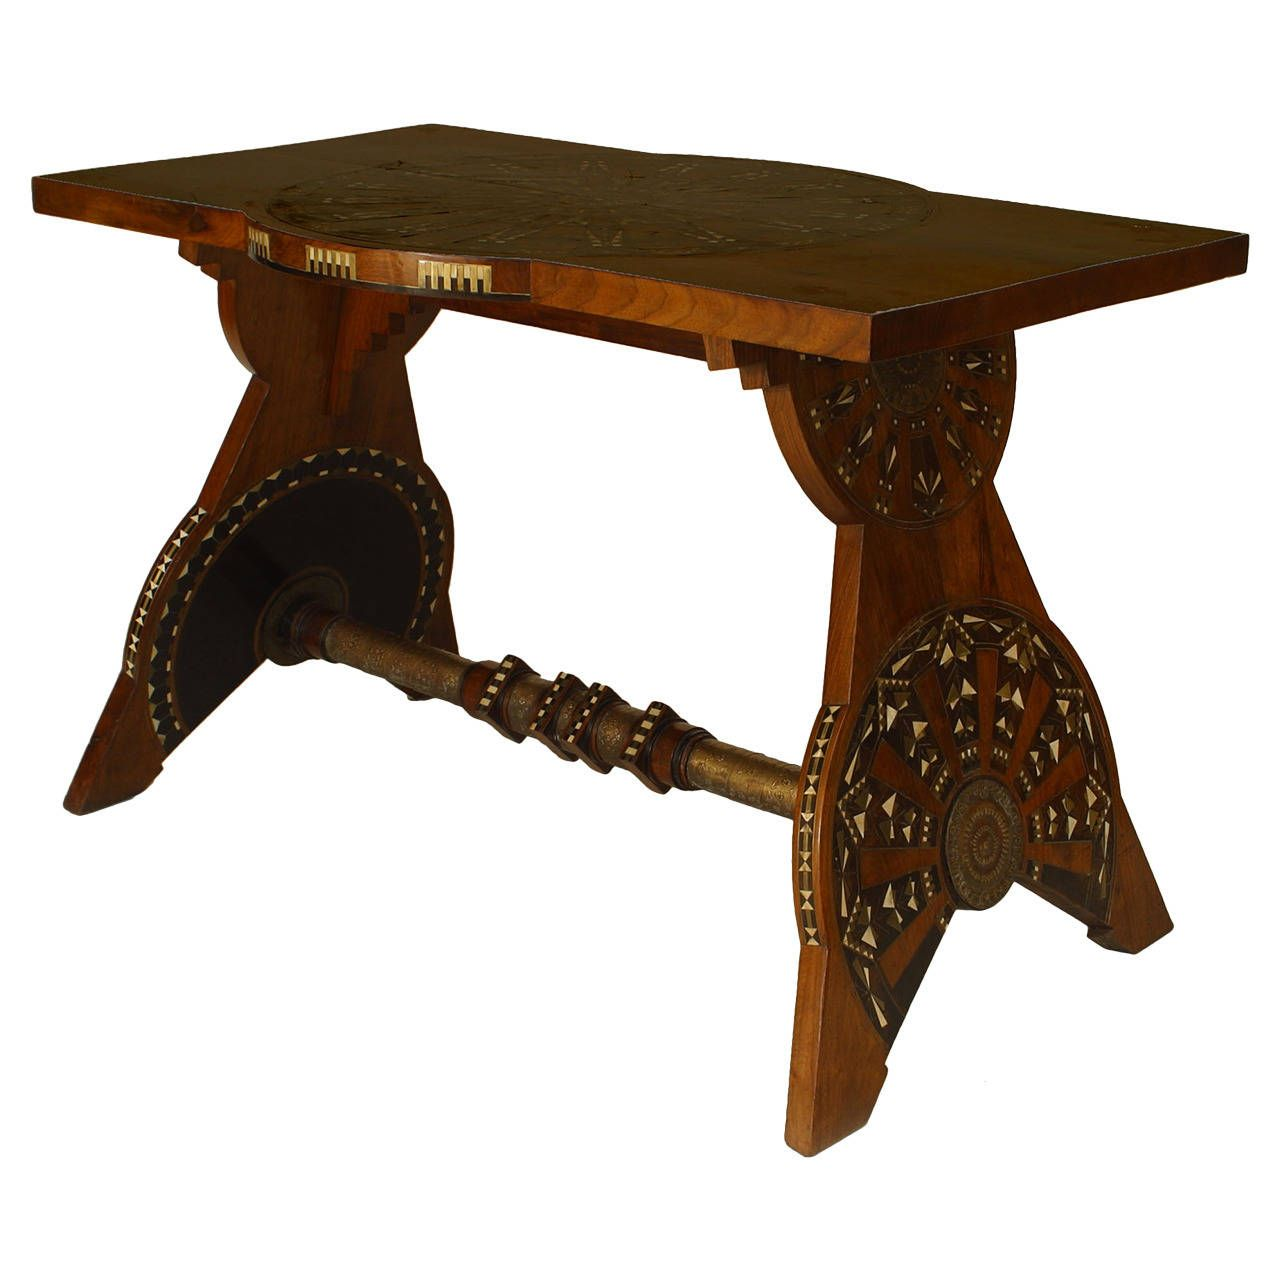 1930s Italian Art Deco Inlaid Rosewood Center Table by Bugatti | From a unique collection of antique and modern center tables at https://www.1stdibs.com/furniture/tables/center-tables/